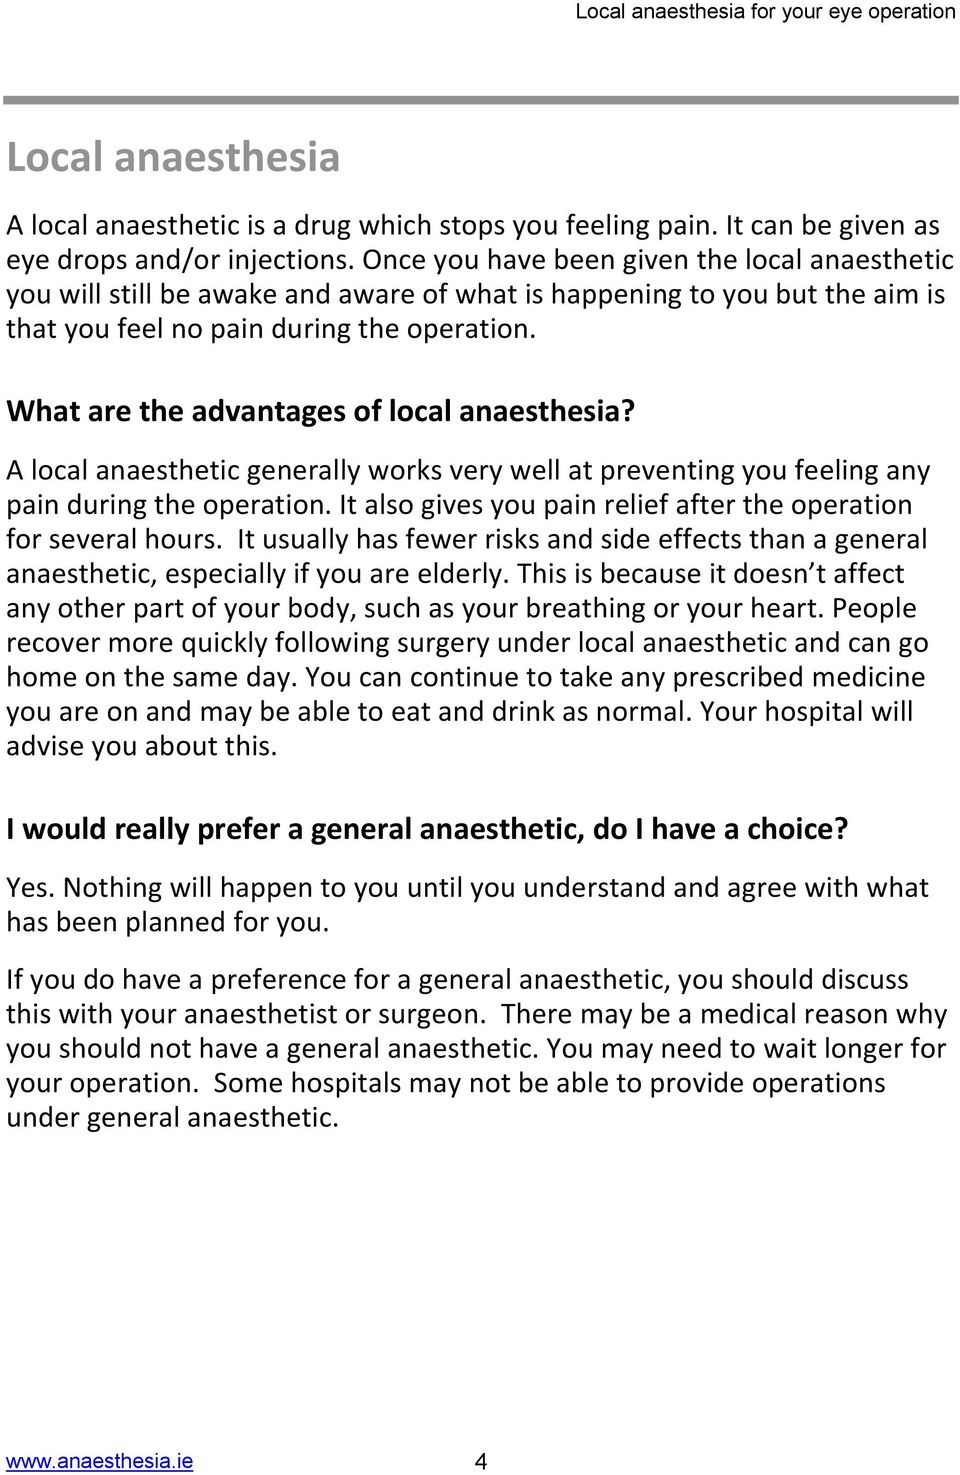 What are the advantages of local anaesthesia? A local anaesthetic generally works very well at preventing you feeling any pain during the operation.